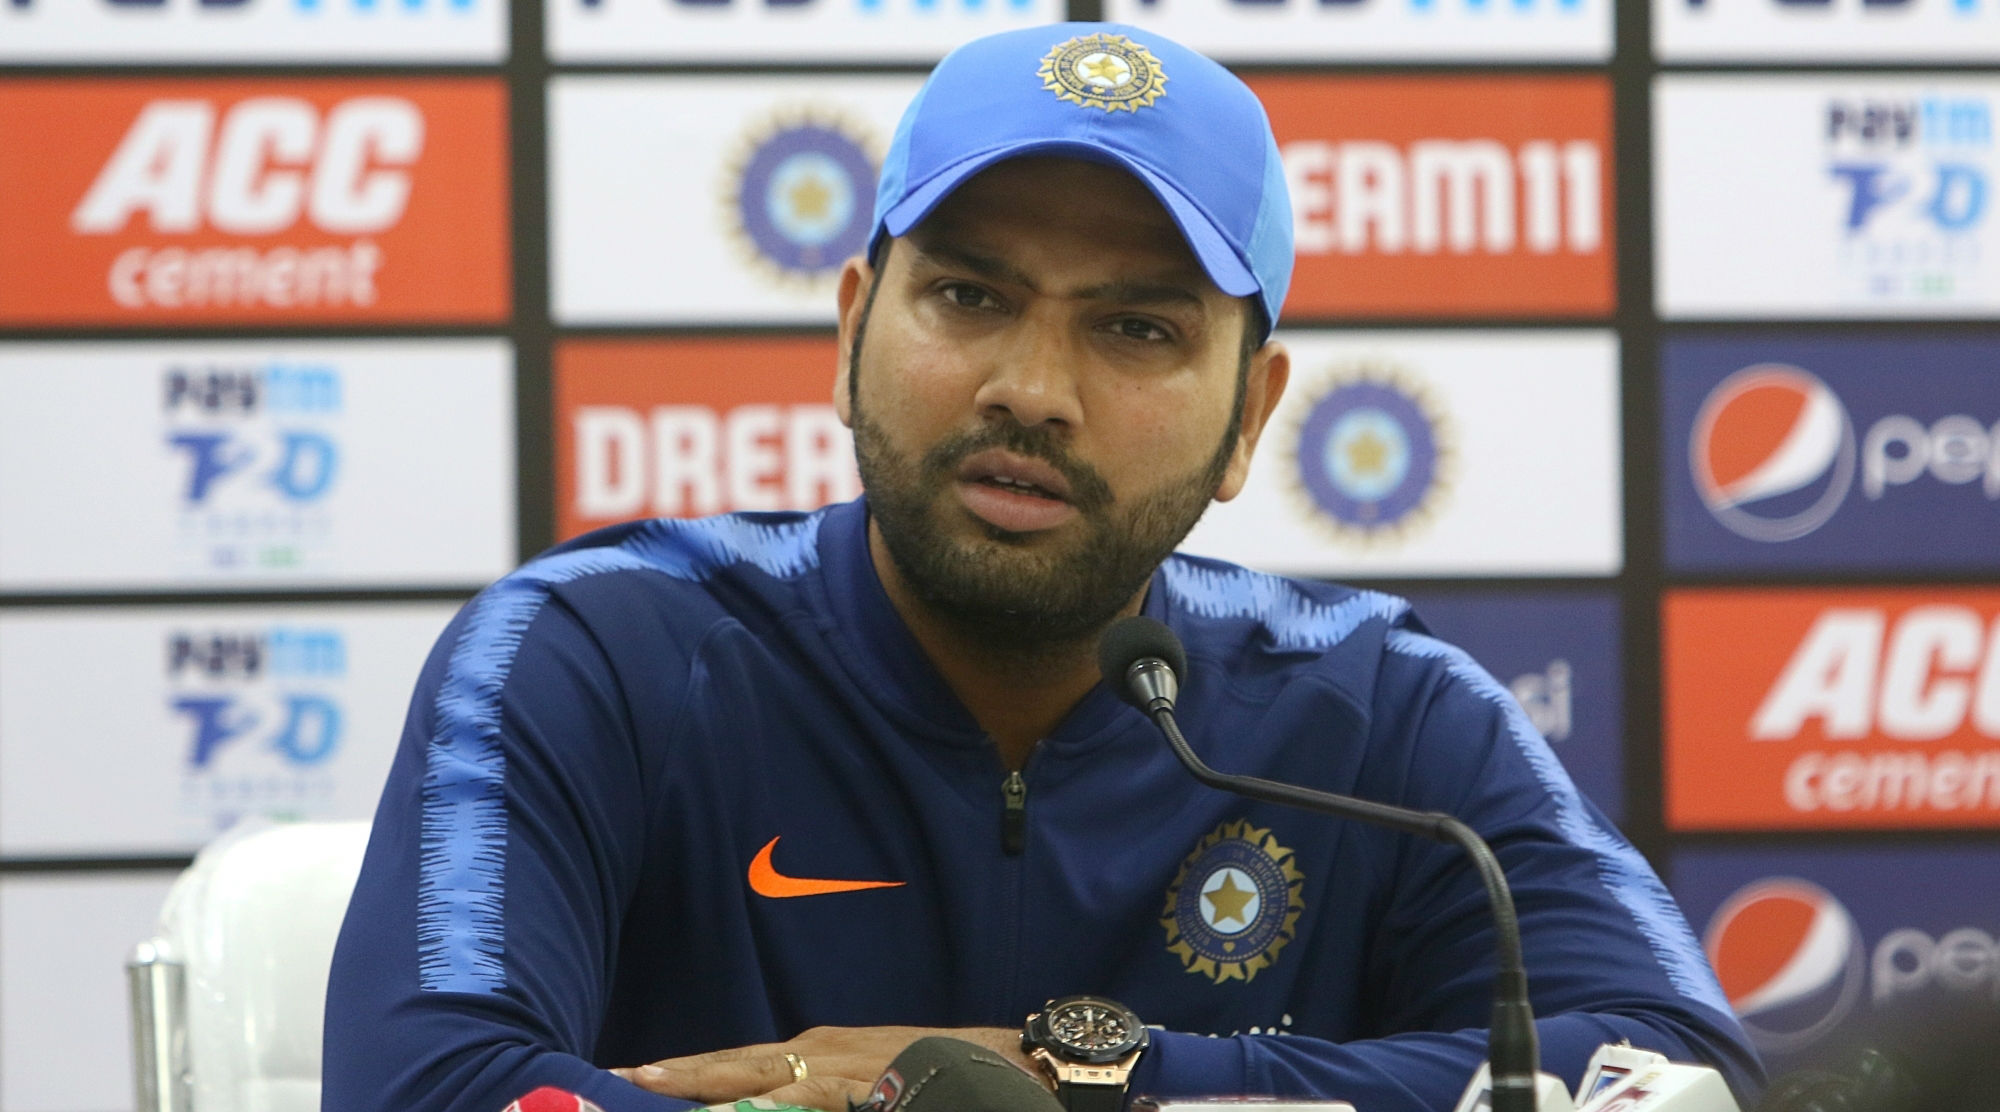 Rohit Sharma, in Interaction With Kevin Pietersen, Says He Is Still Looking Forward for IPL 2020 to Happen